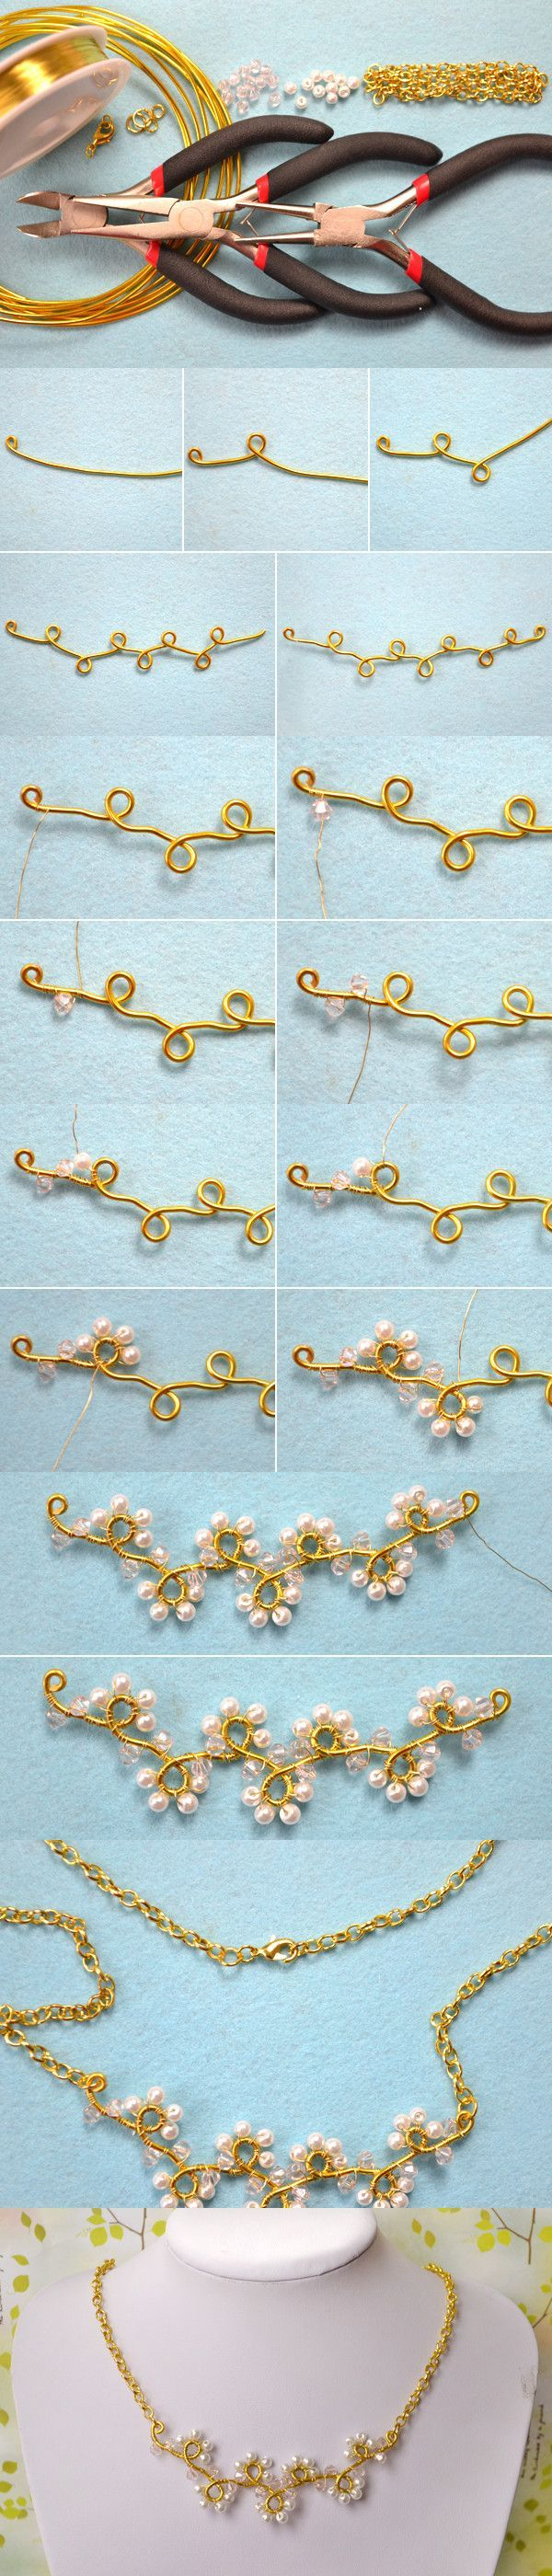 Spring Jewelry Design on How to Make a Wire Flower Vine Necklace with Beads from LC.Pandahall.com